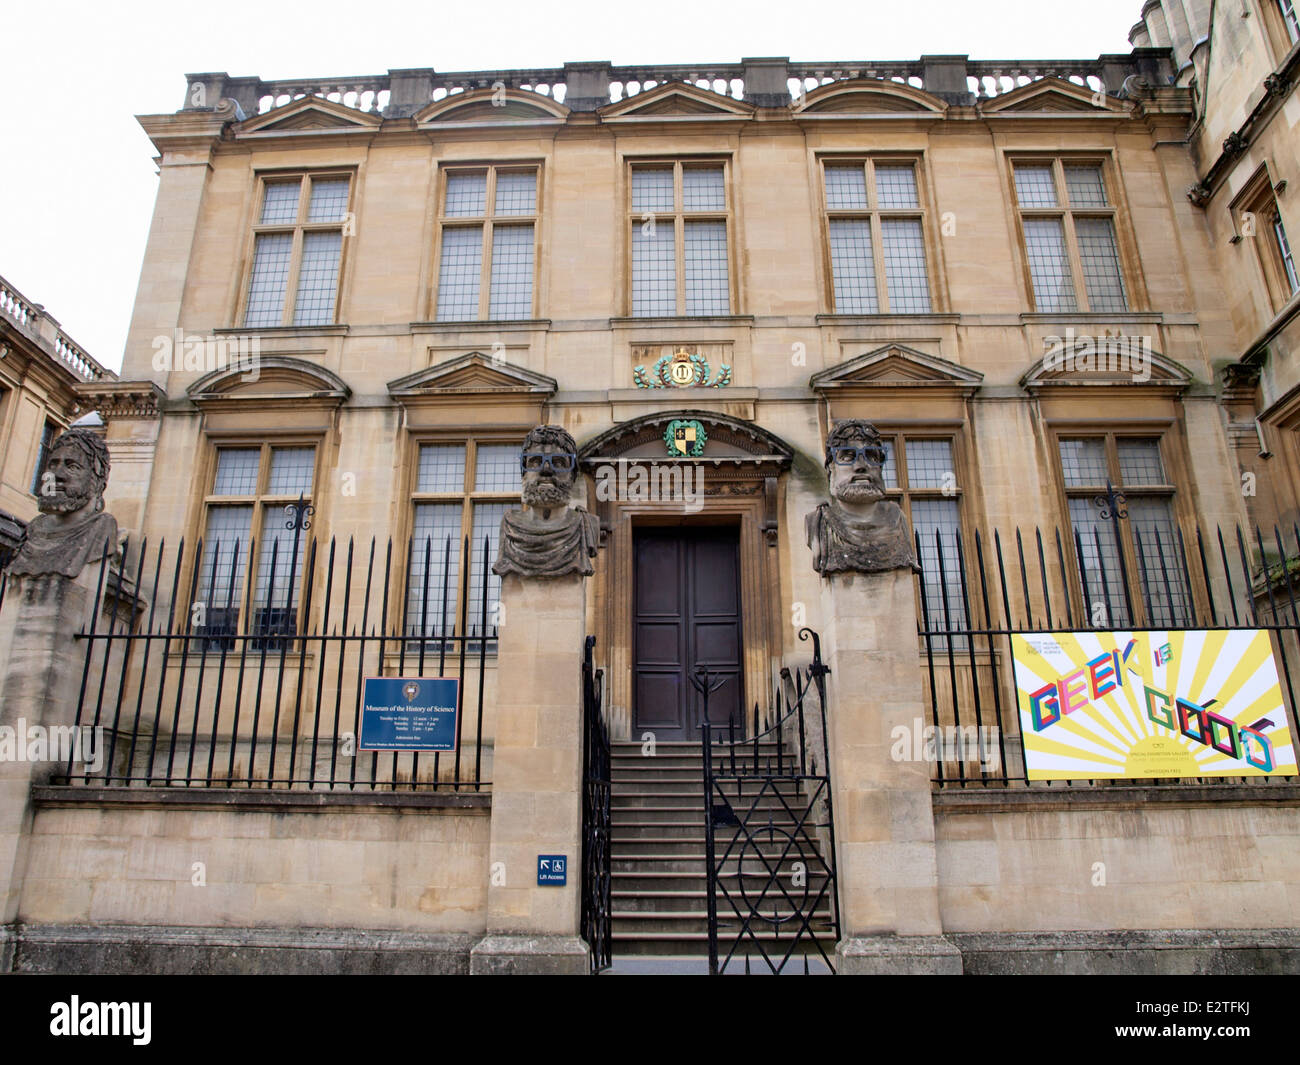 Museum of the History of Science, Oxford, UK - Stock Image